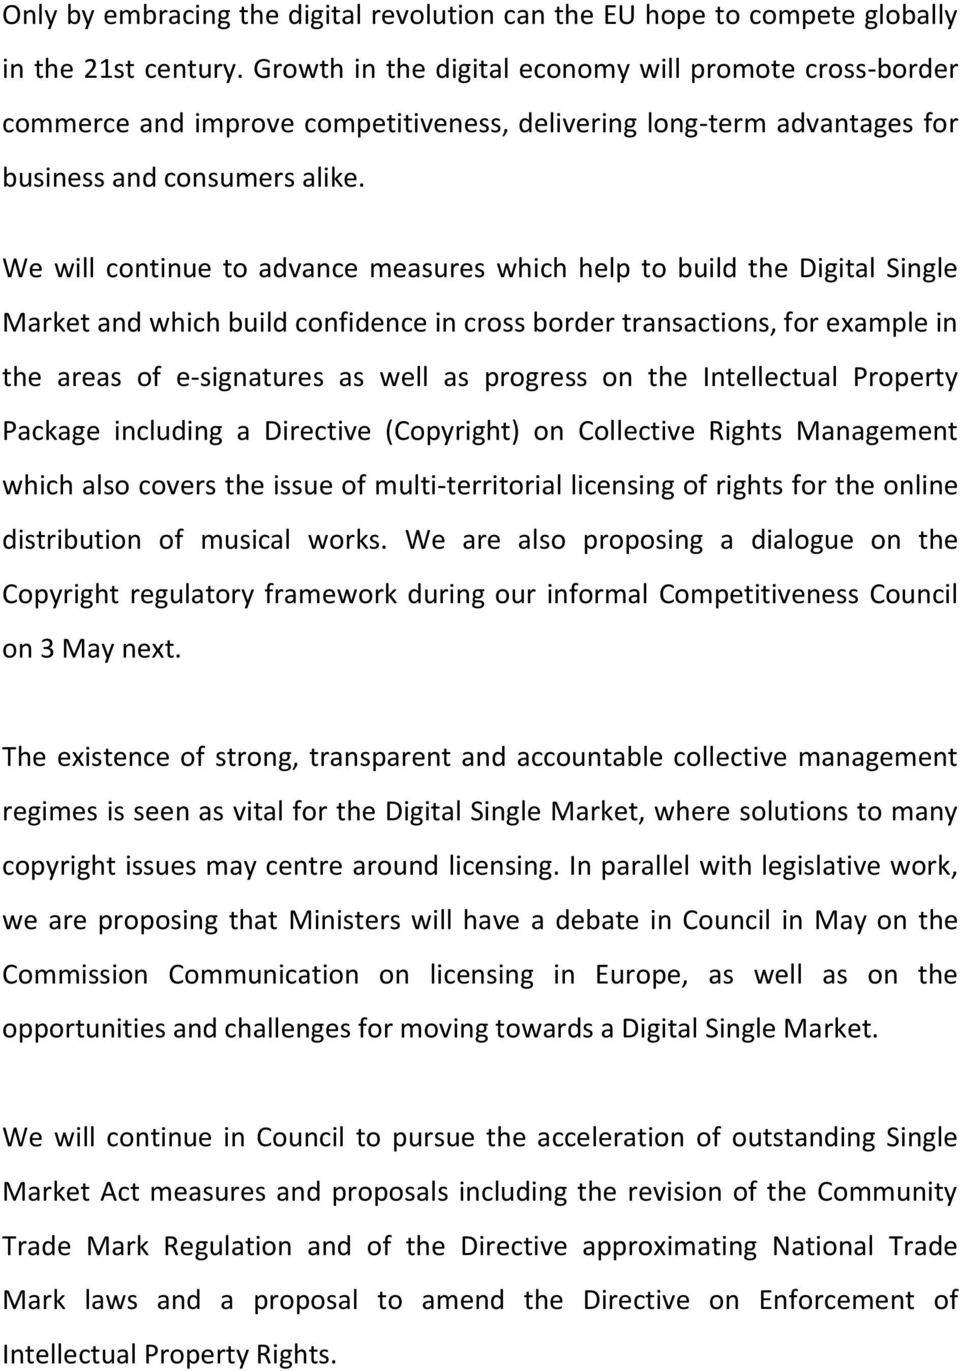 We will continue to advance measures which help to build the Digital Single Market and which build confidence in cross border transactions, for example in the areas of e-signatures as well as